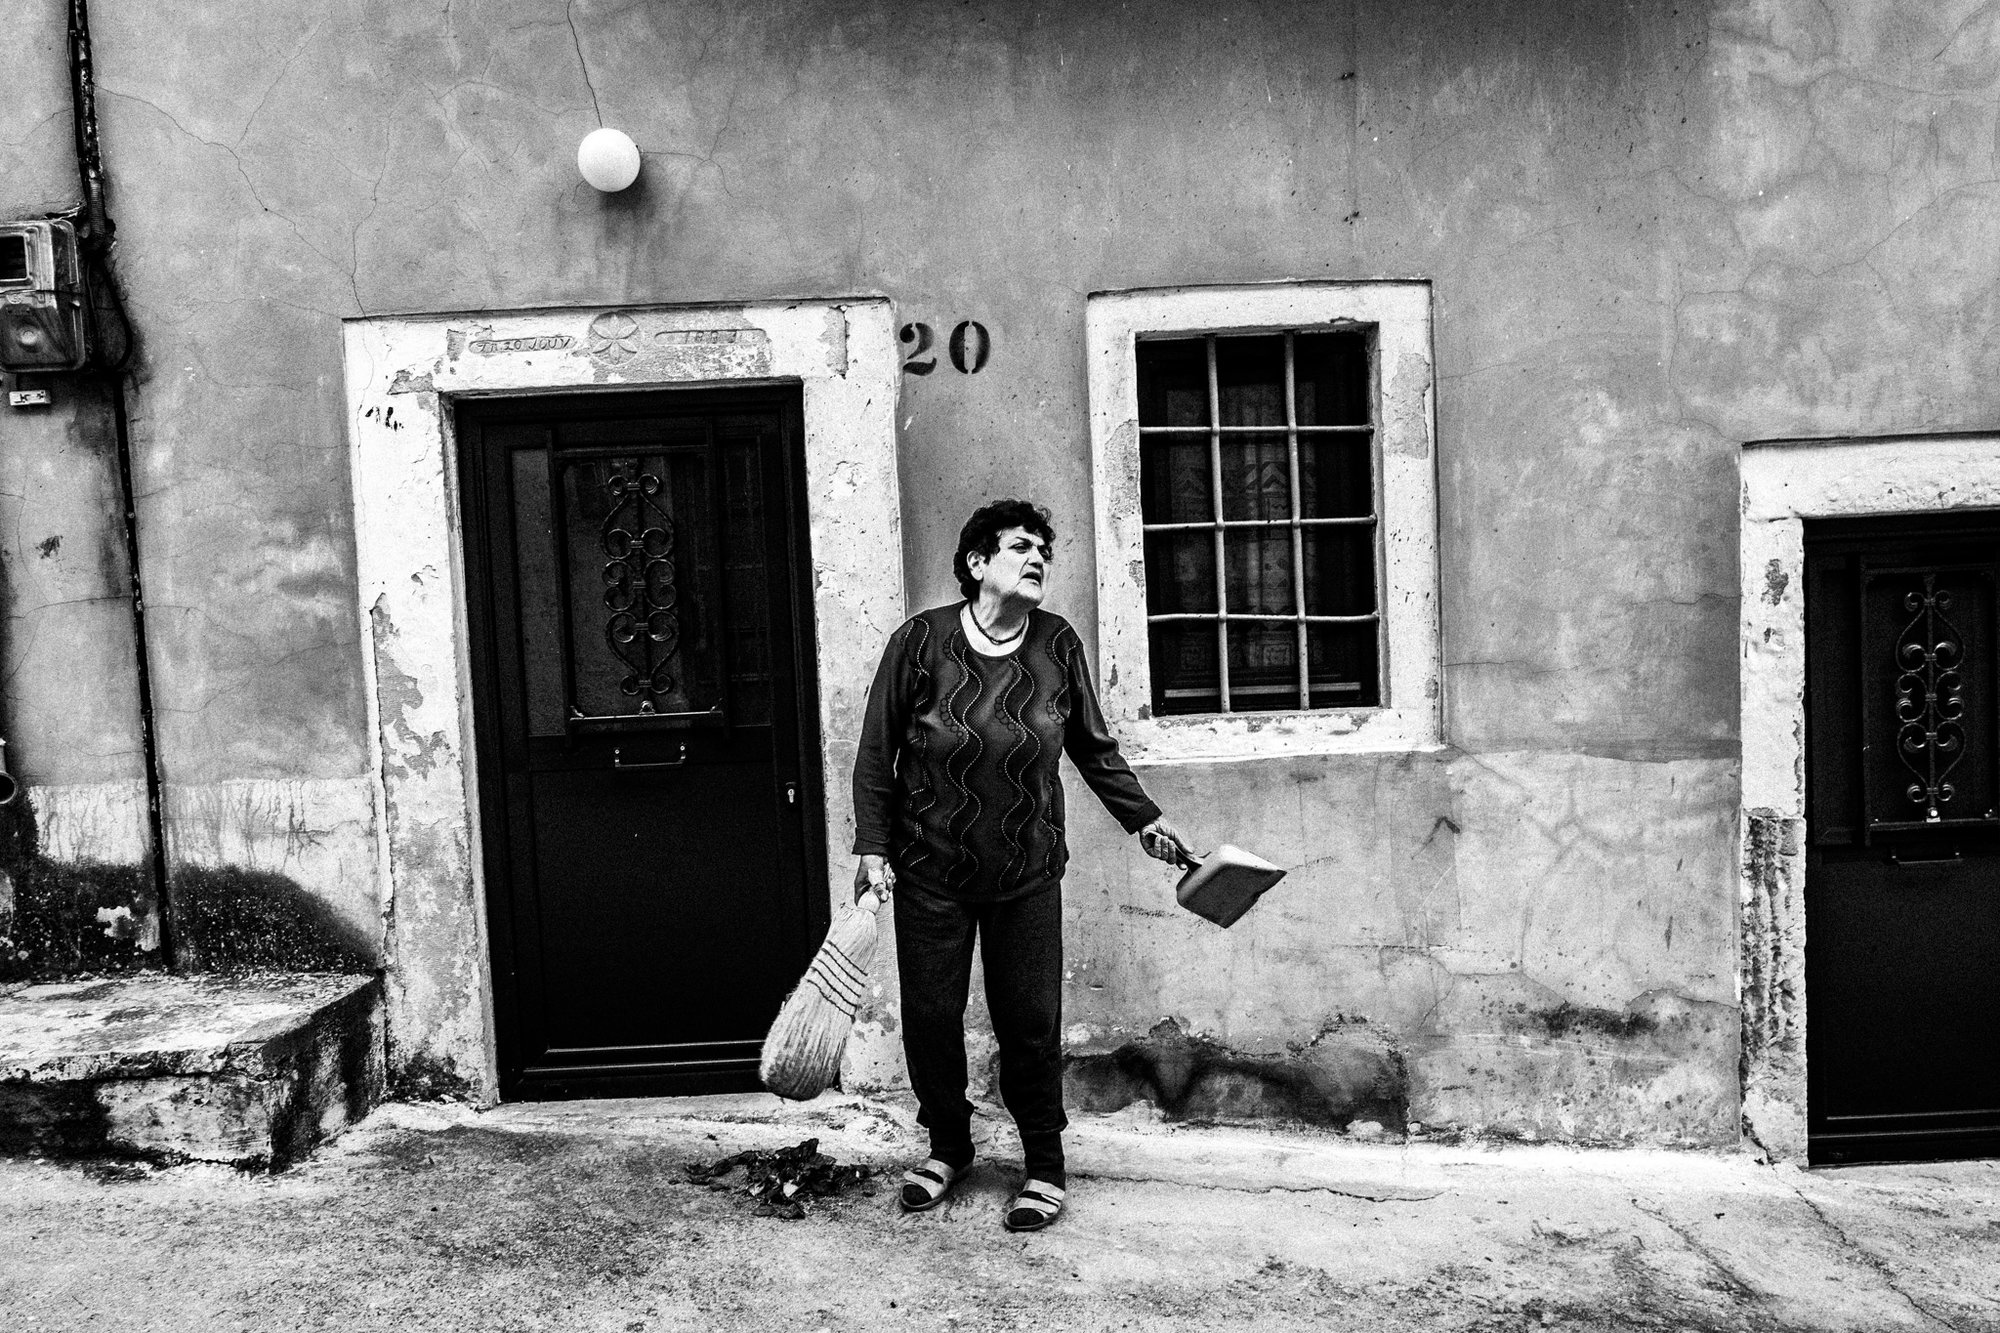 Woman sweeping her front porch at Patrika village Ελλάδα. Βόρειο Αιγαίο. Chios. © George Tatakis